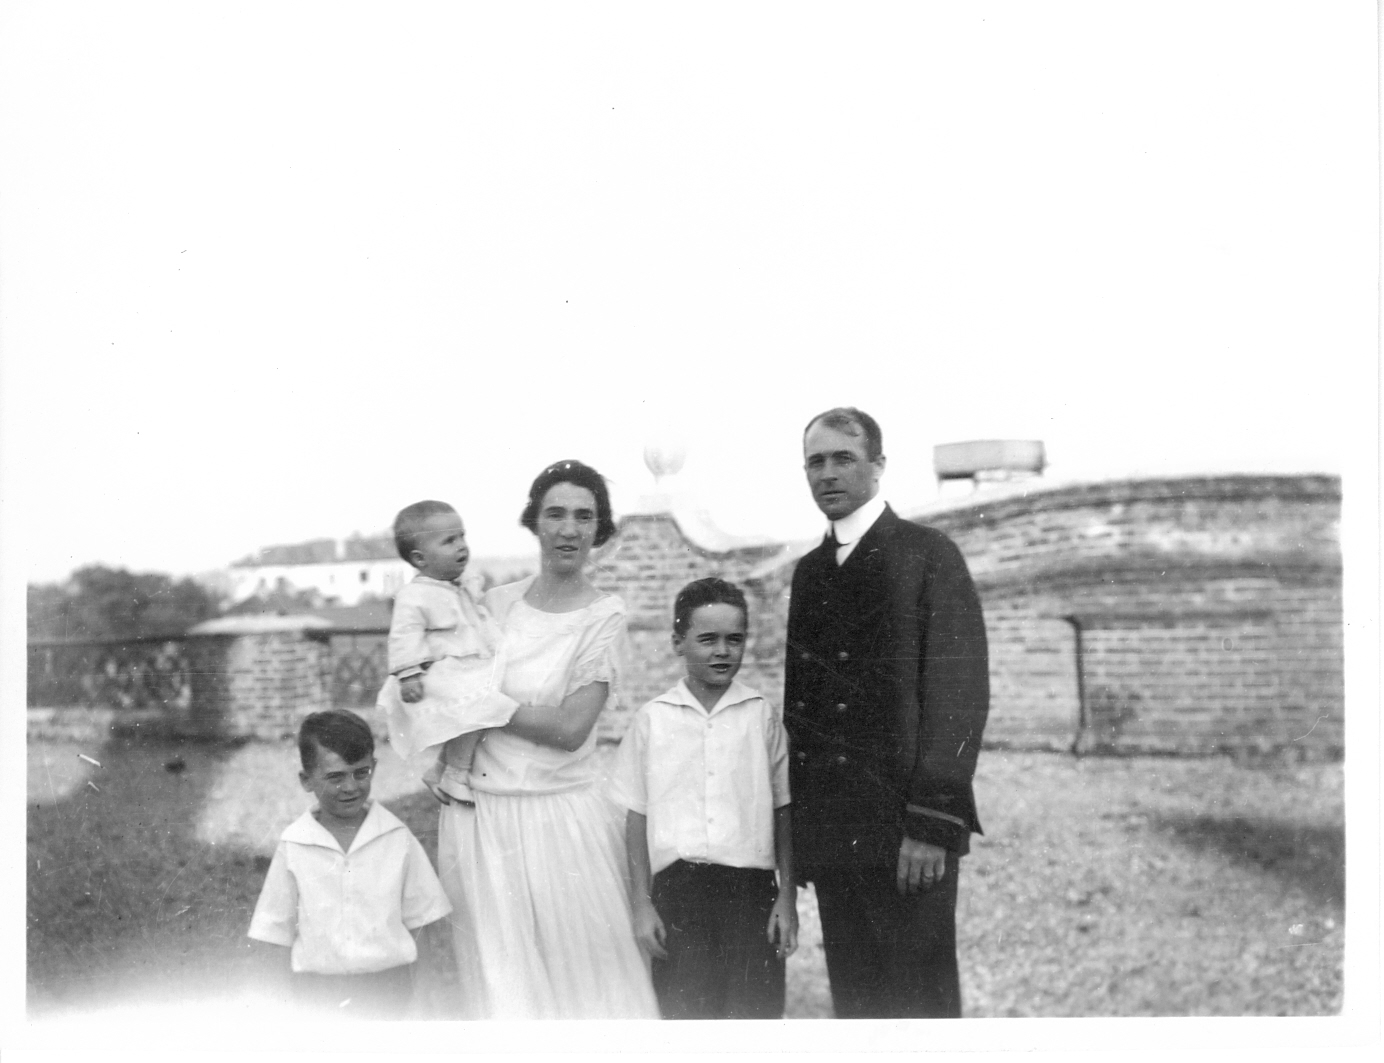 66c7223eb714 A black and white photograph of a family. A couple and three children of  various